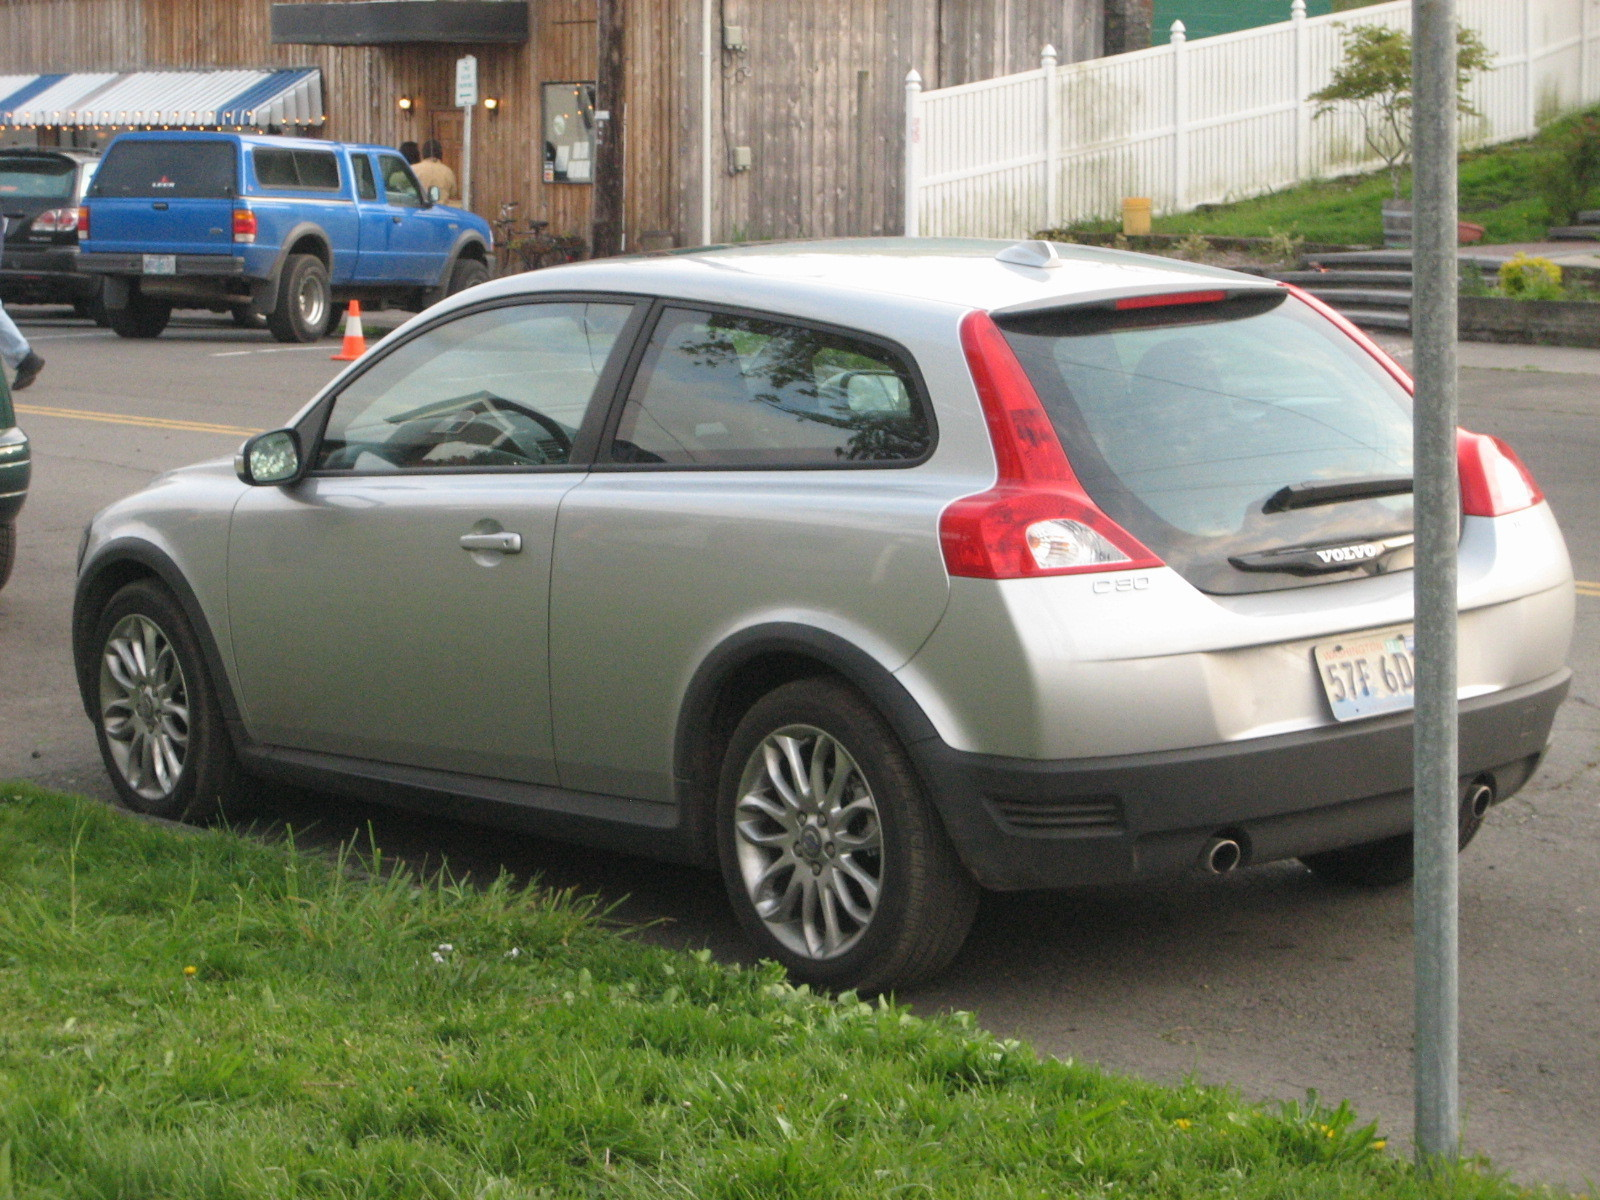 The Cullen Cars Images Edward S Silver Volvo C30 Hd